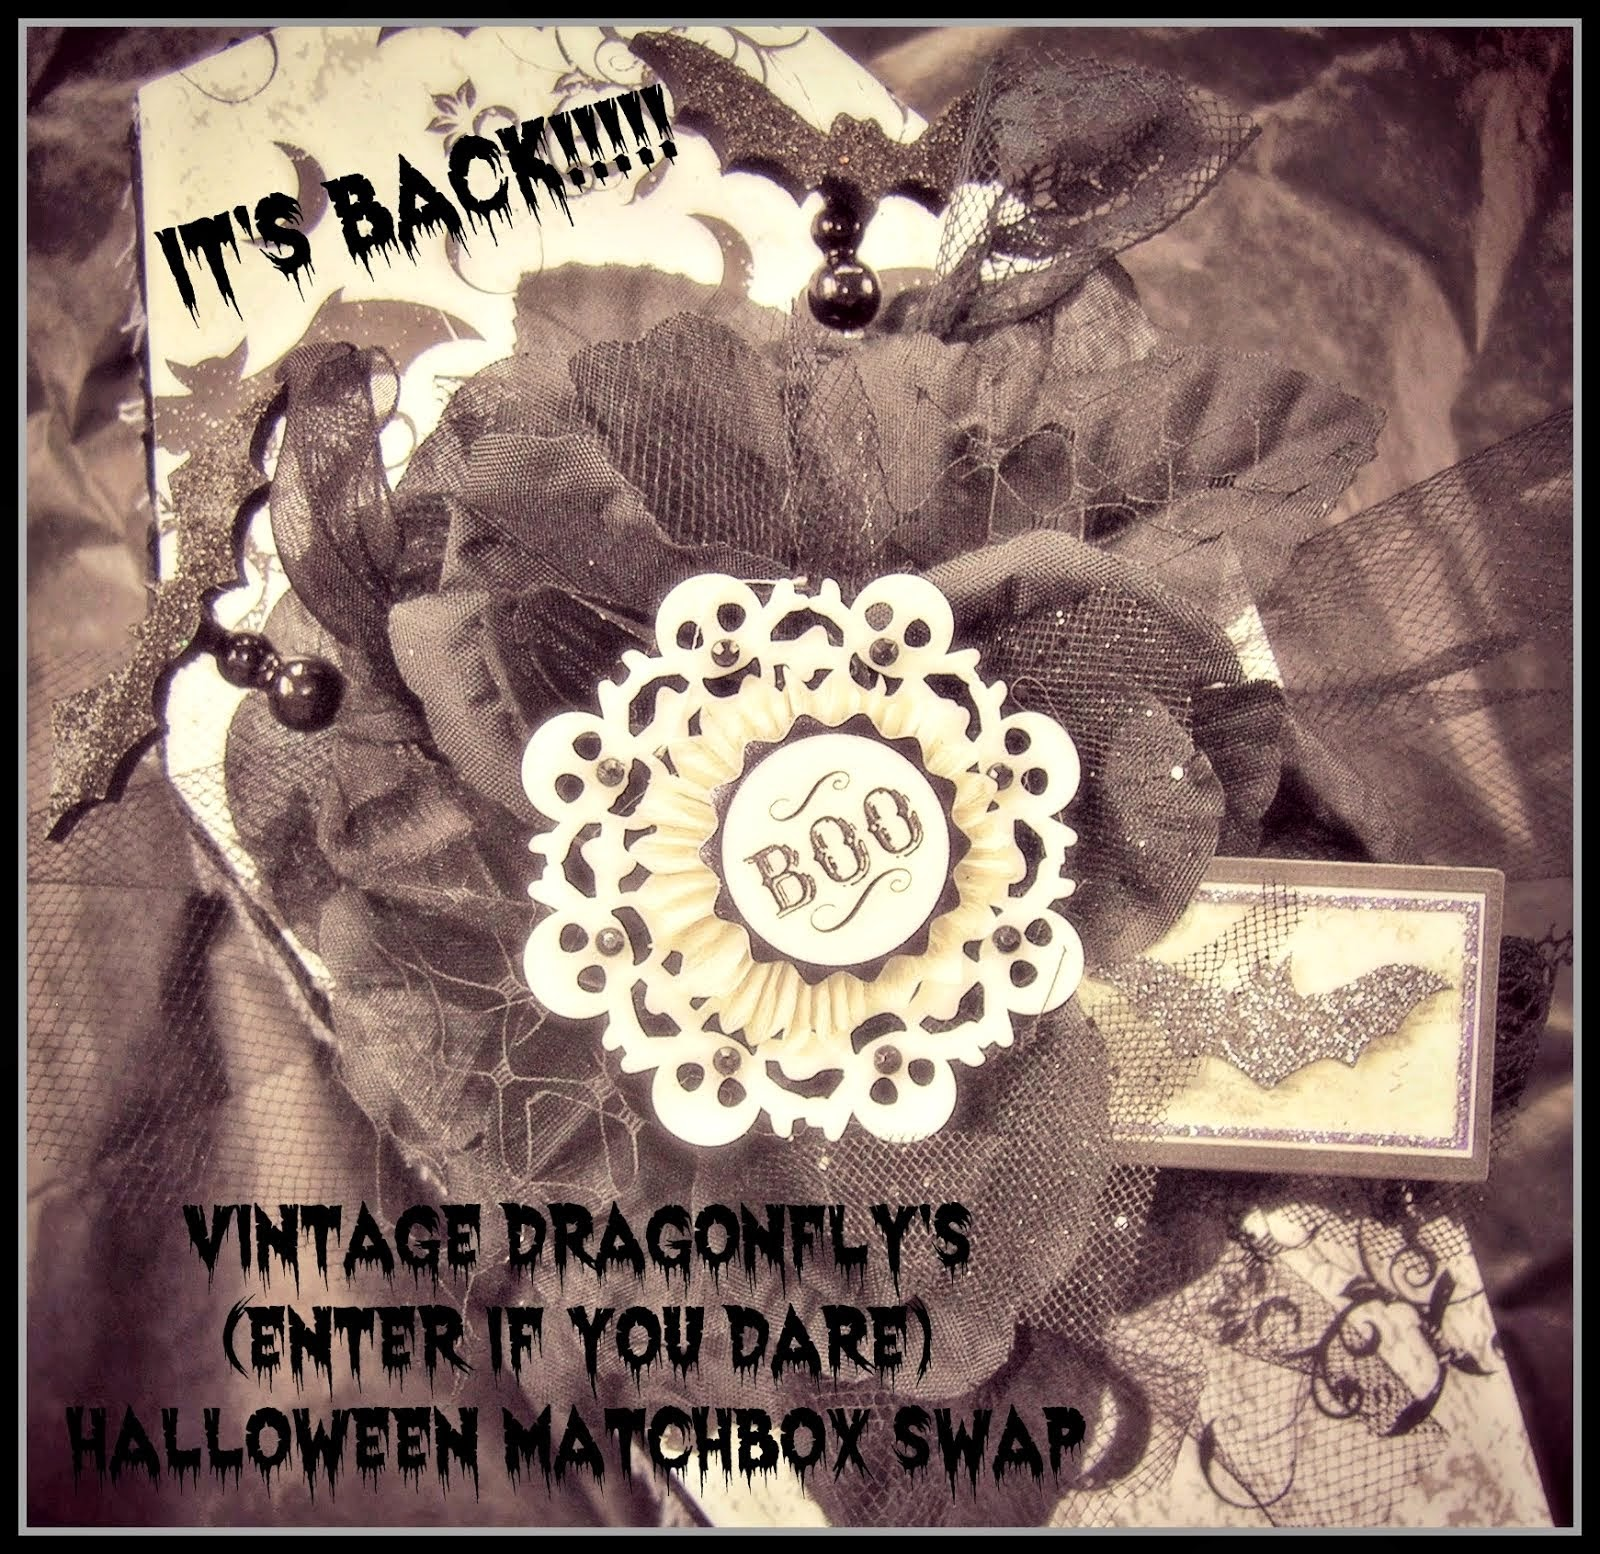 2014 VintageDragon Fly Halloween Altered Matchbox Swap